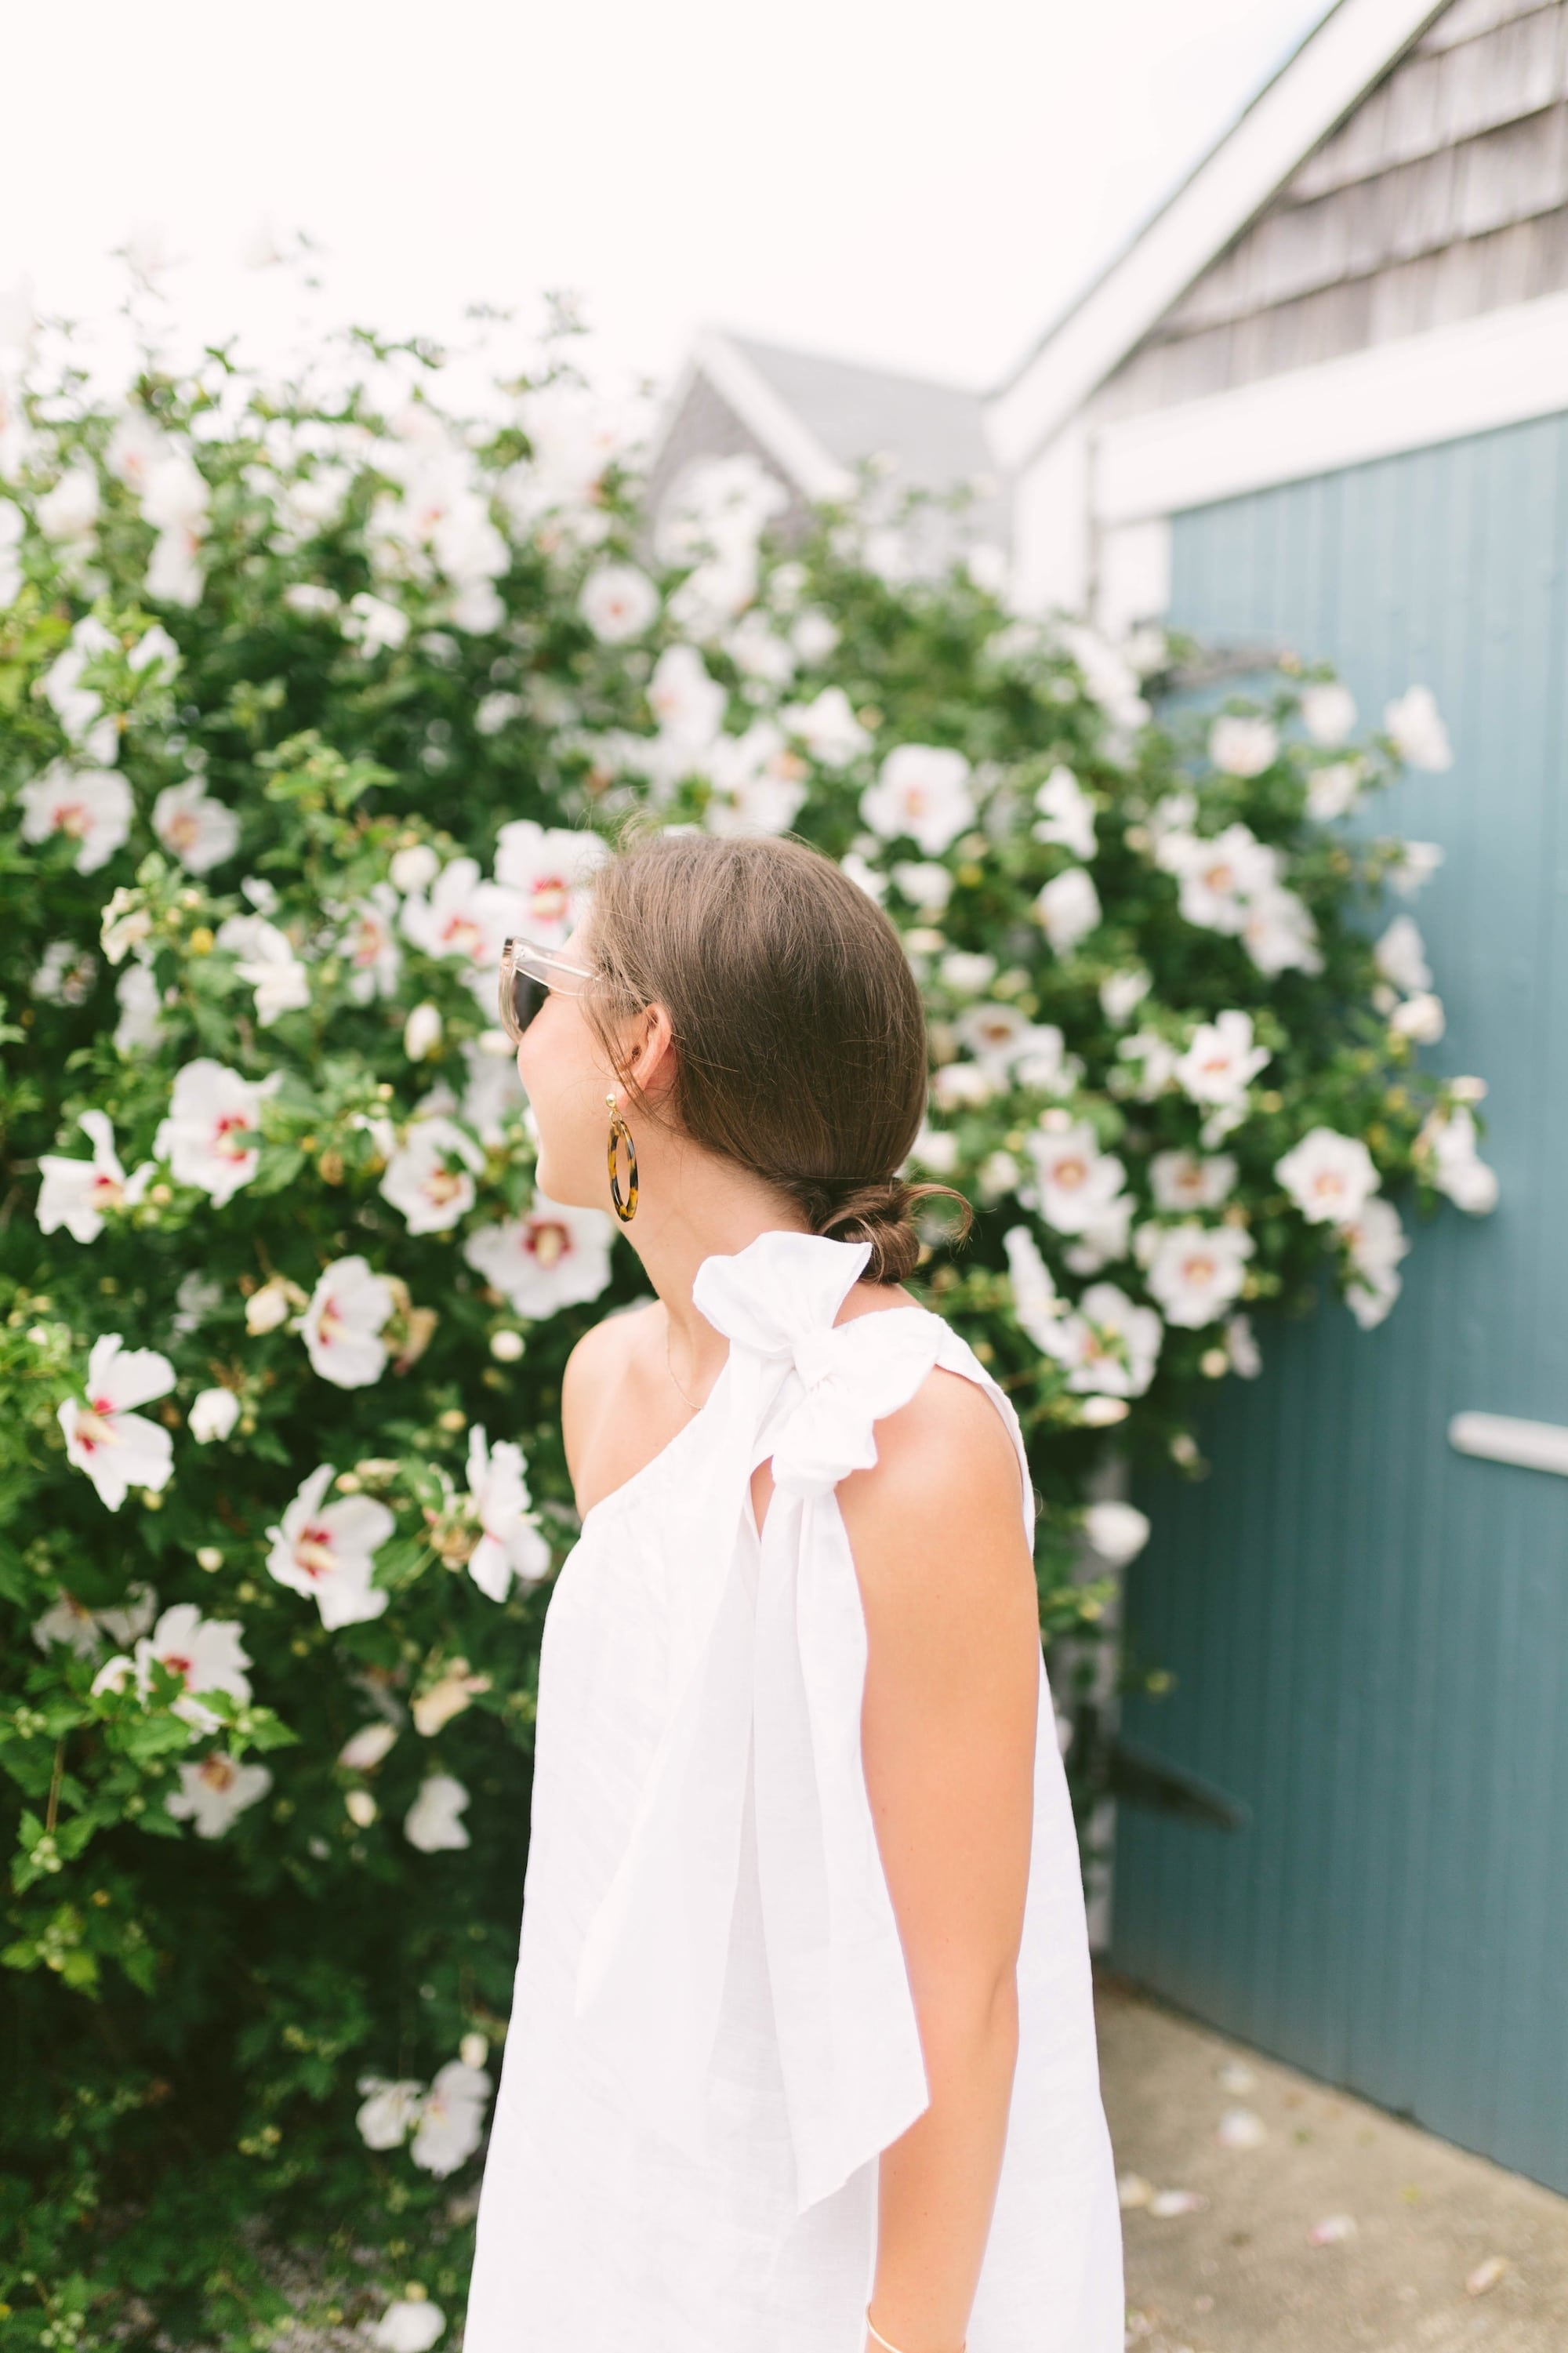 White Linen Dress with Bow Detail